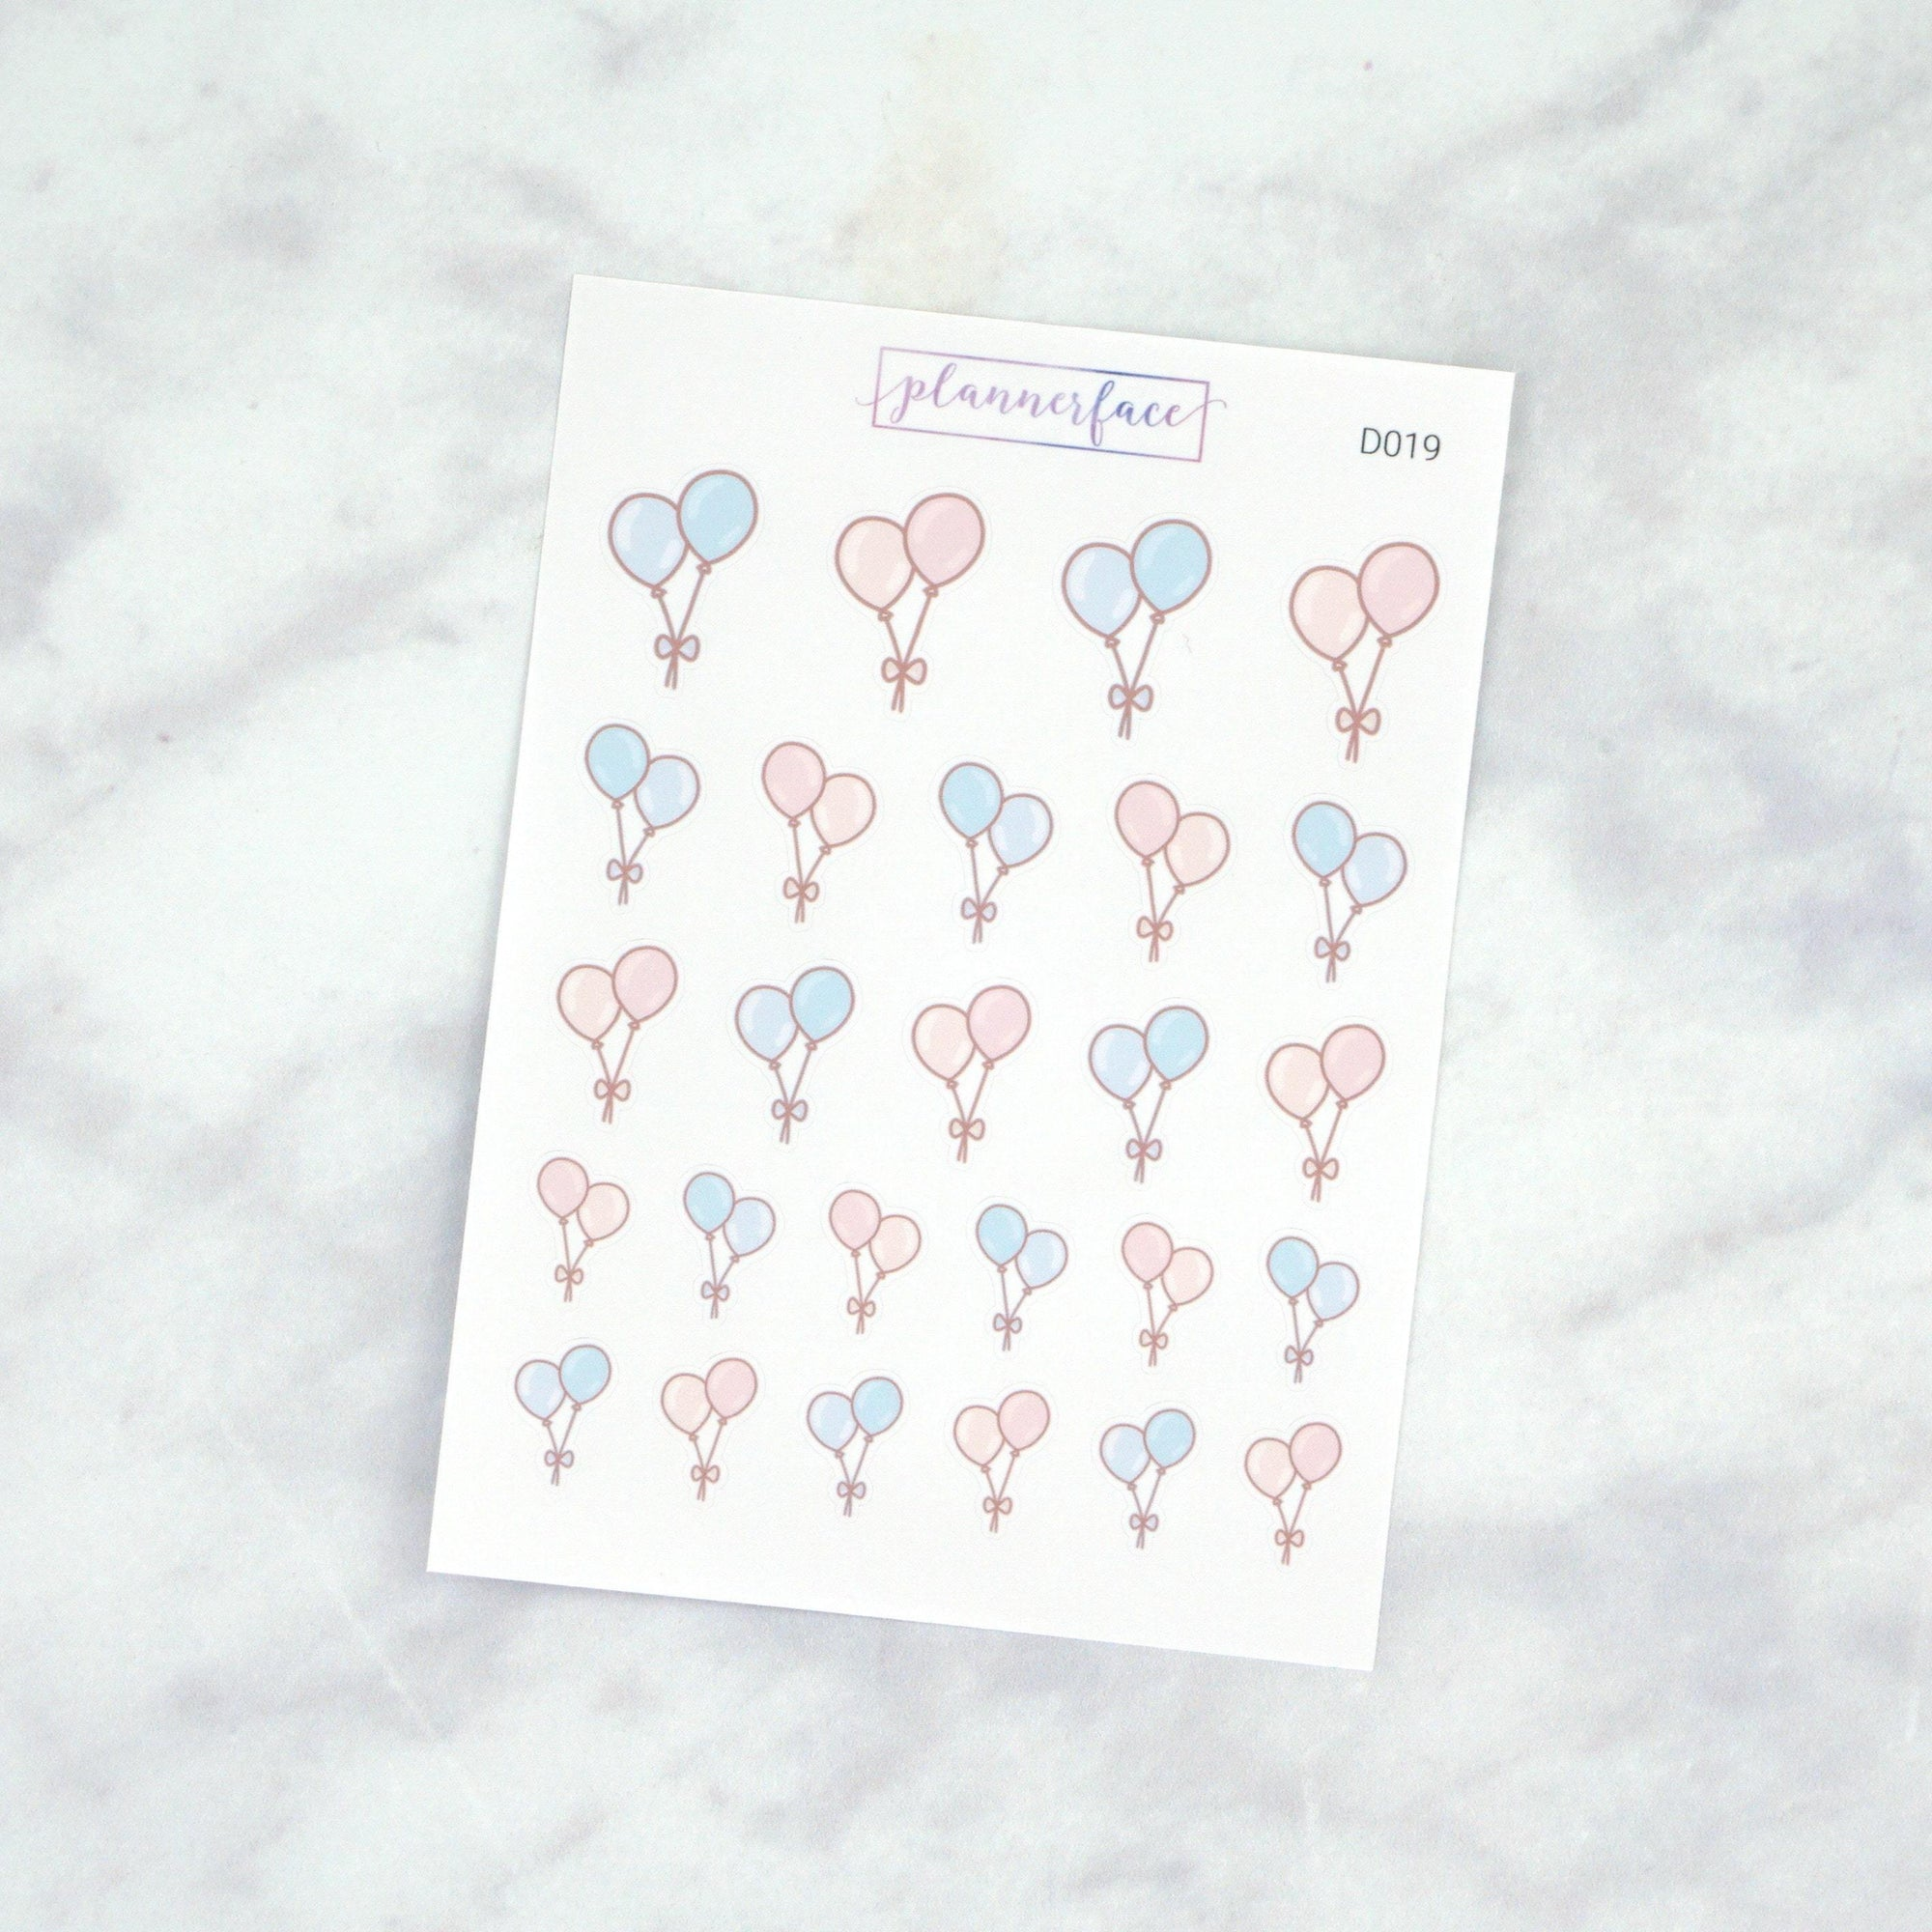 Plannerface Balloon Doodles Planner Stickers